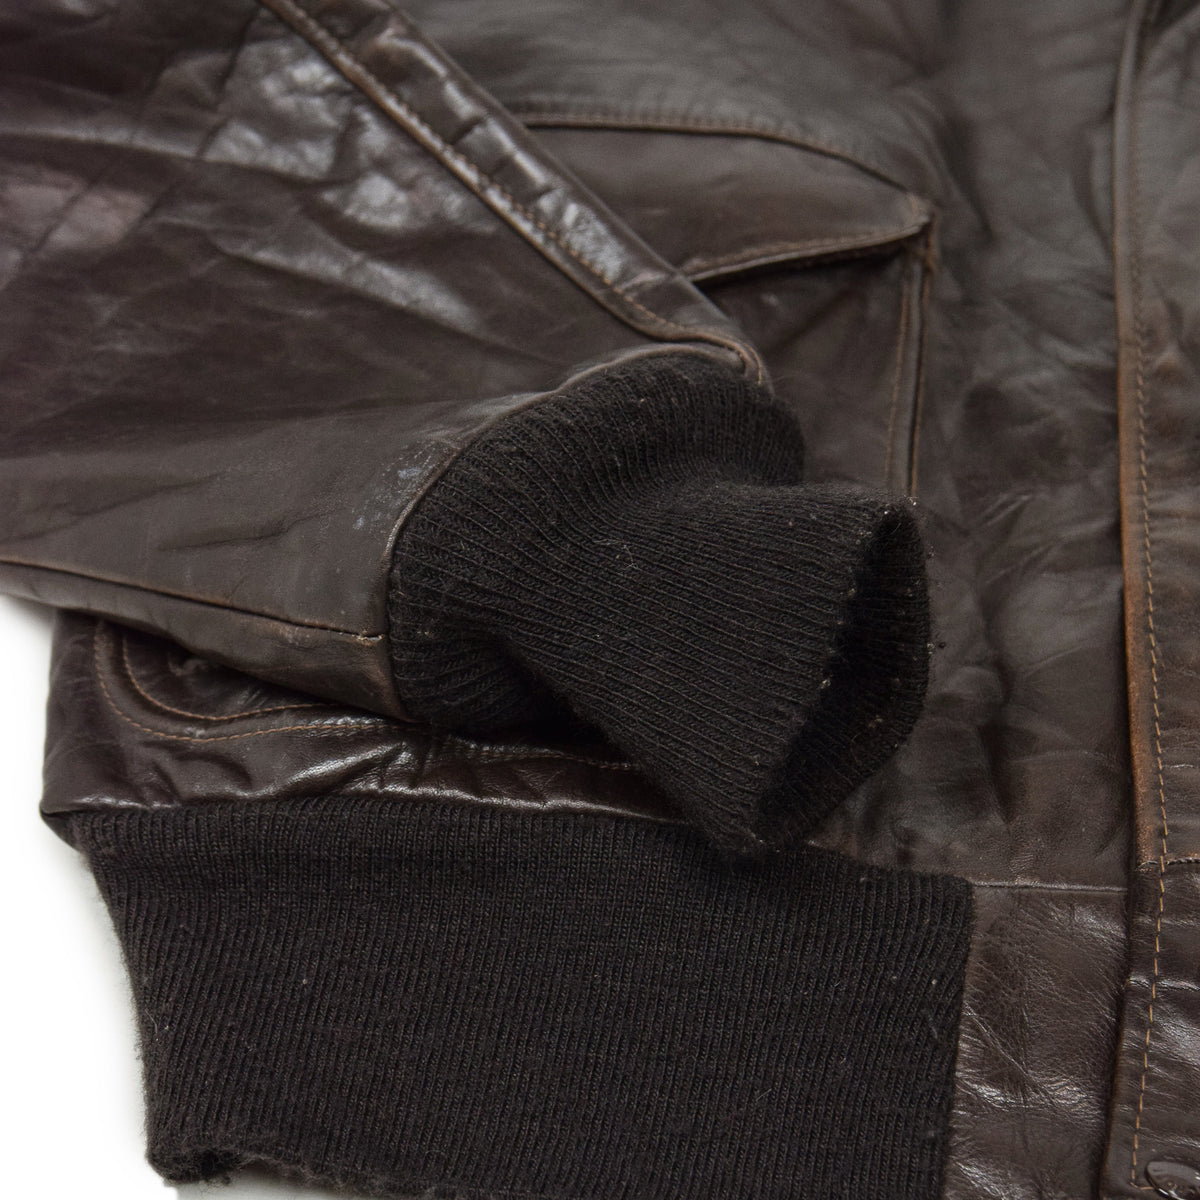 Vintage 80s A-2 Schott Brown Leather Flight Bomber Jacket Made in USA 48 XXL cuff detail